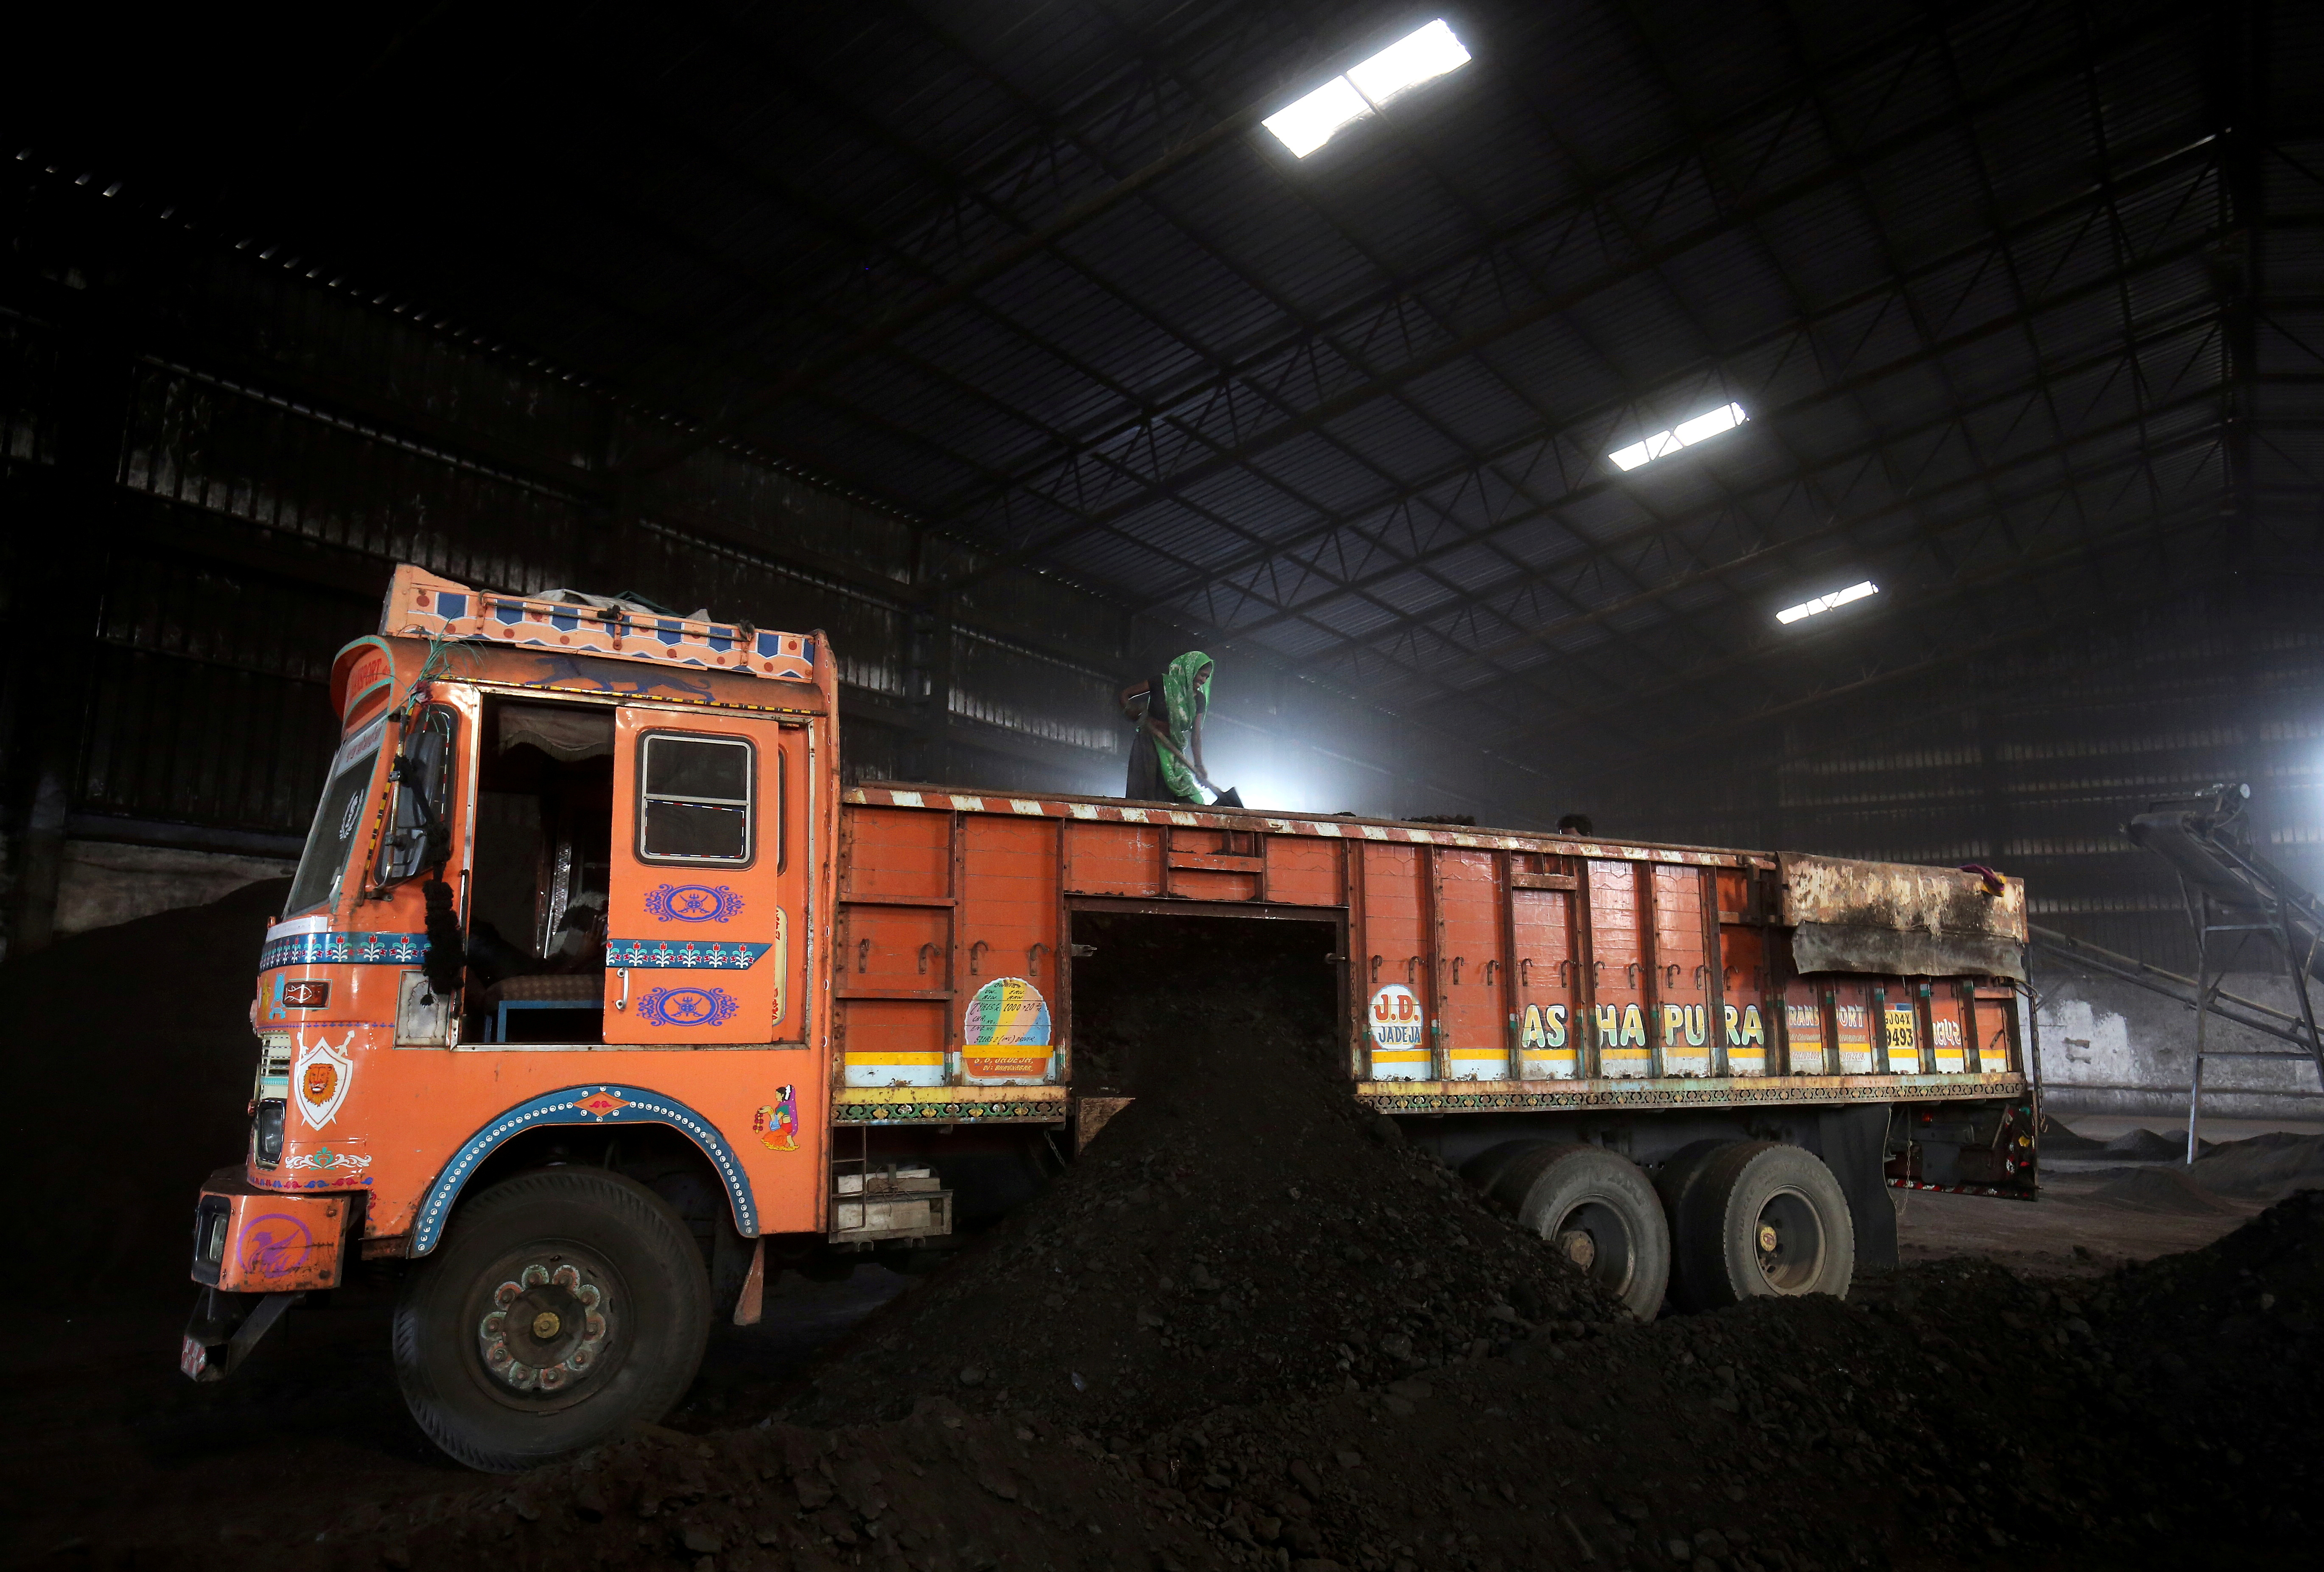 A worker shovels coal in a supply truck at a yard on the outskirts of Ahmedabad, India, October 25, 2018. REUTERS/Amit Dave